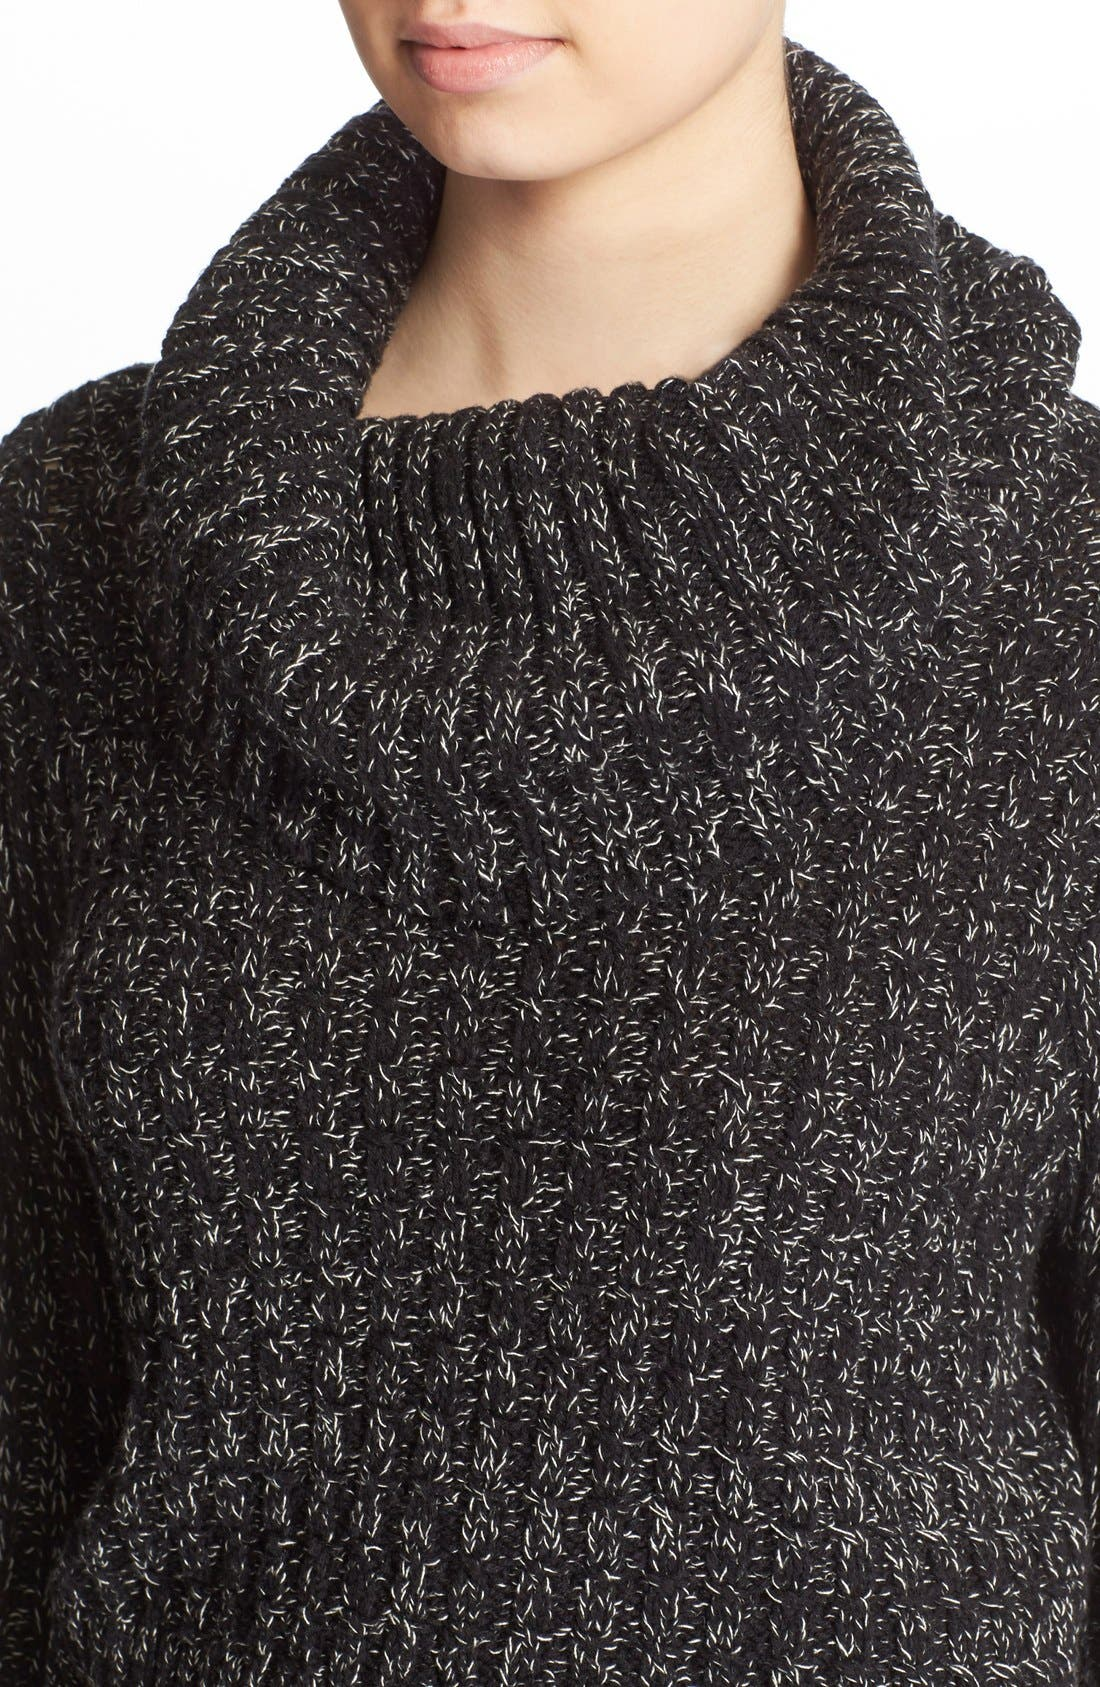 'Twisted Cable' Turtleneck Sweater,                             Alternate thumbnail 2, color,                             001